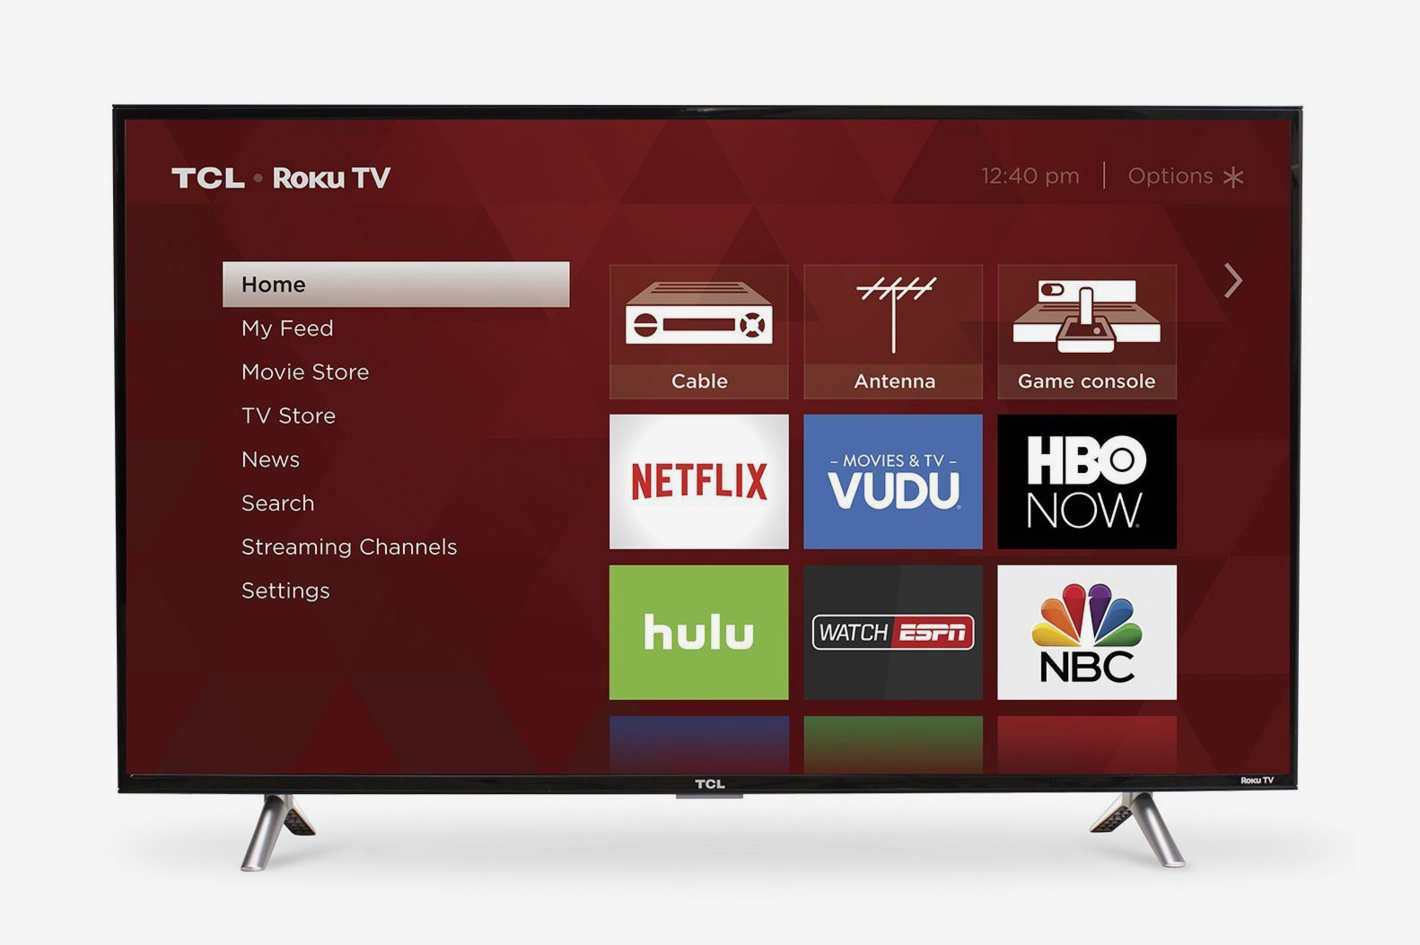 TCL 43S305 40-Inch 1080p Roku Smart LED TV